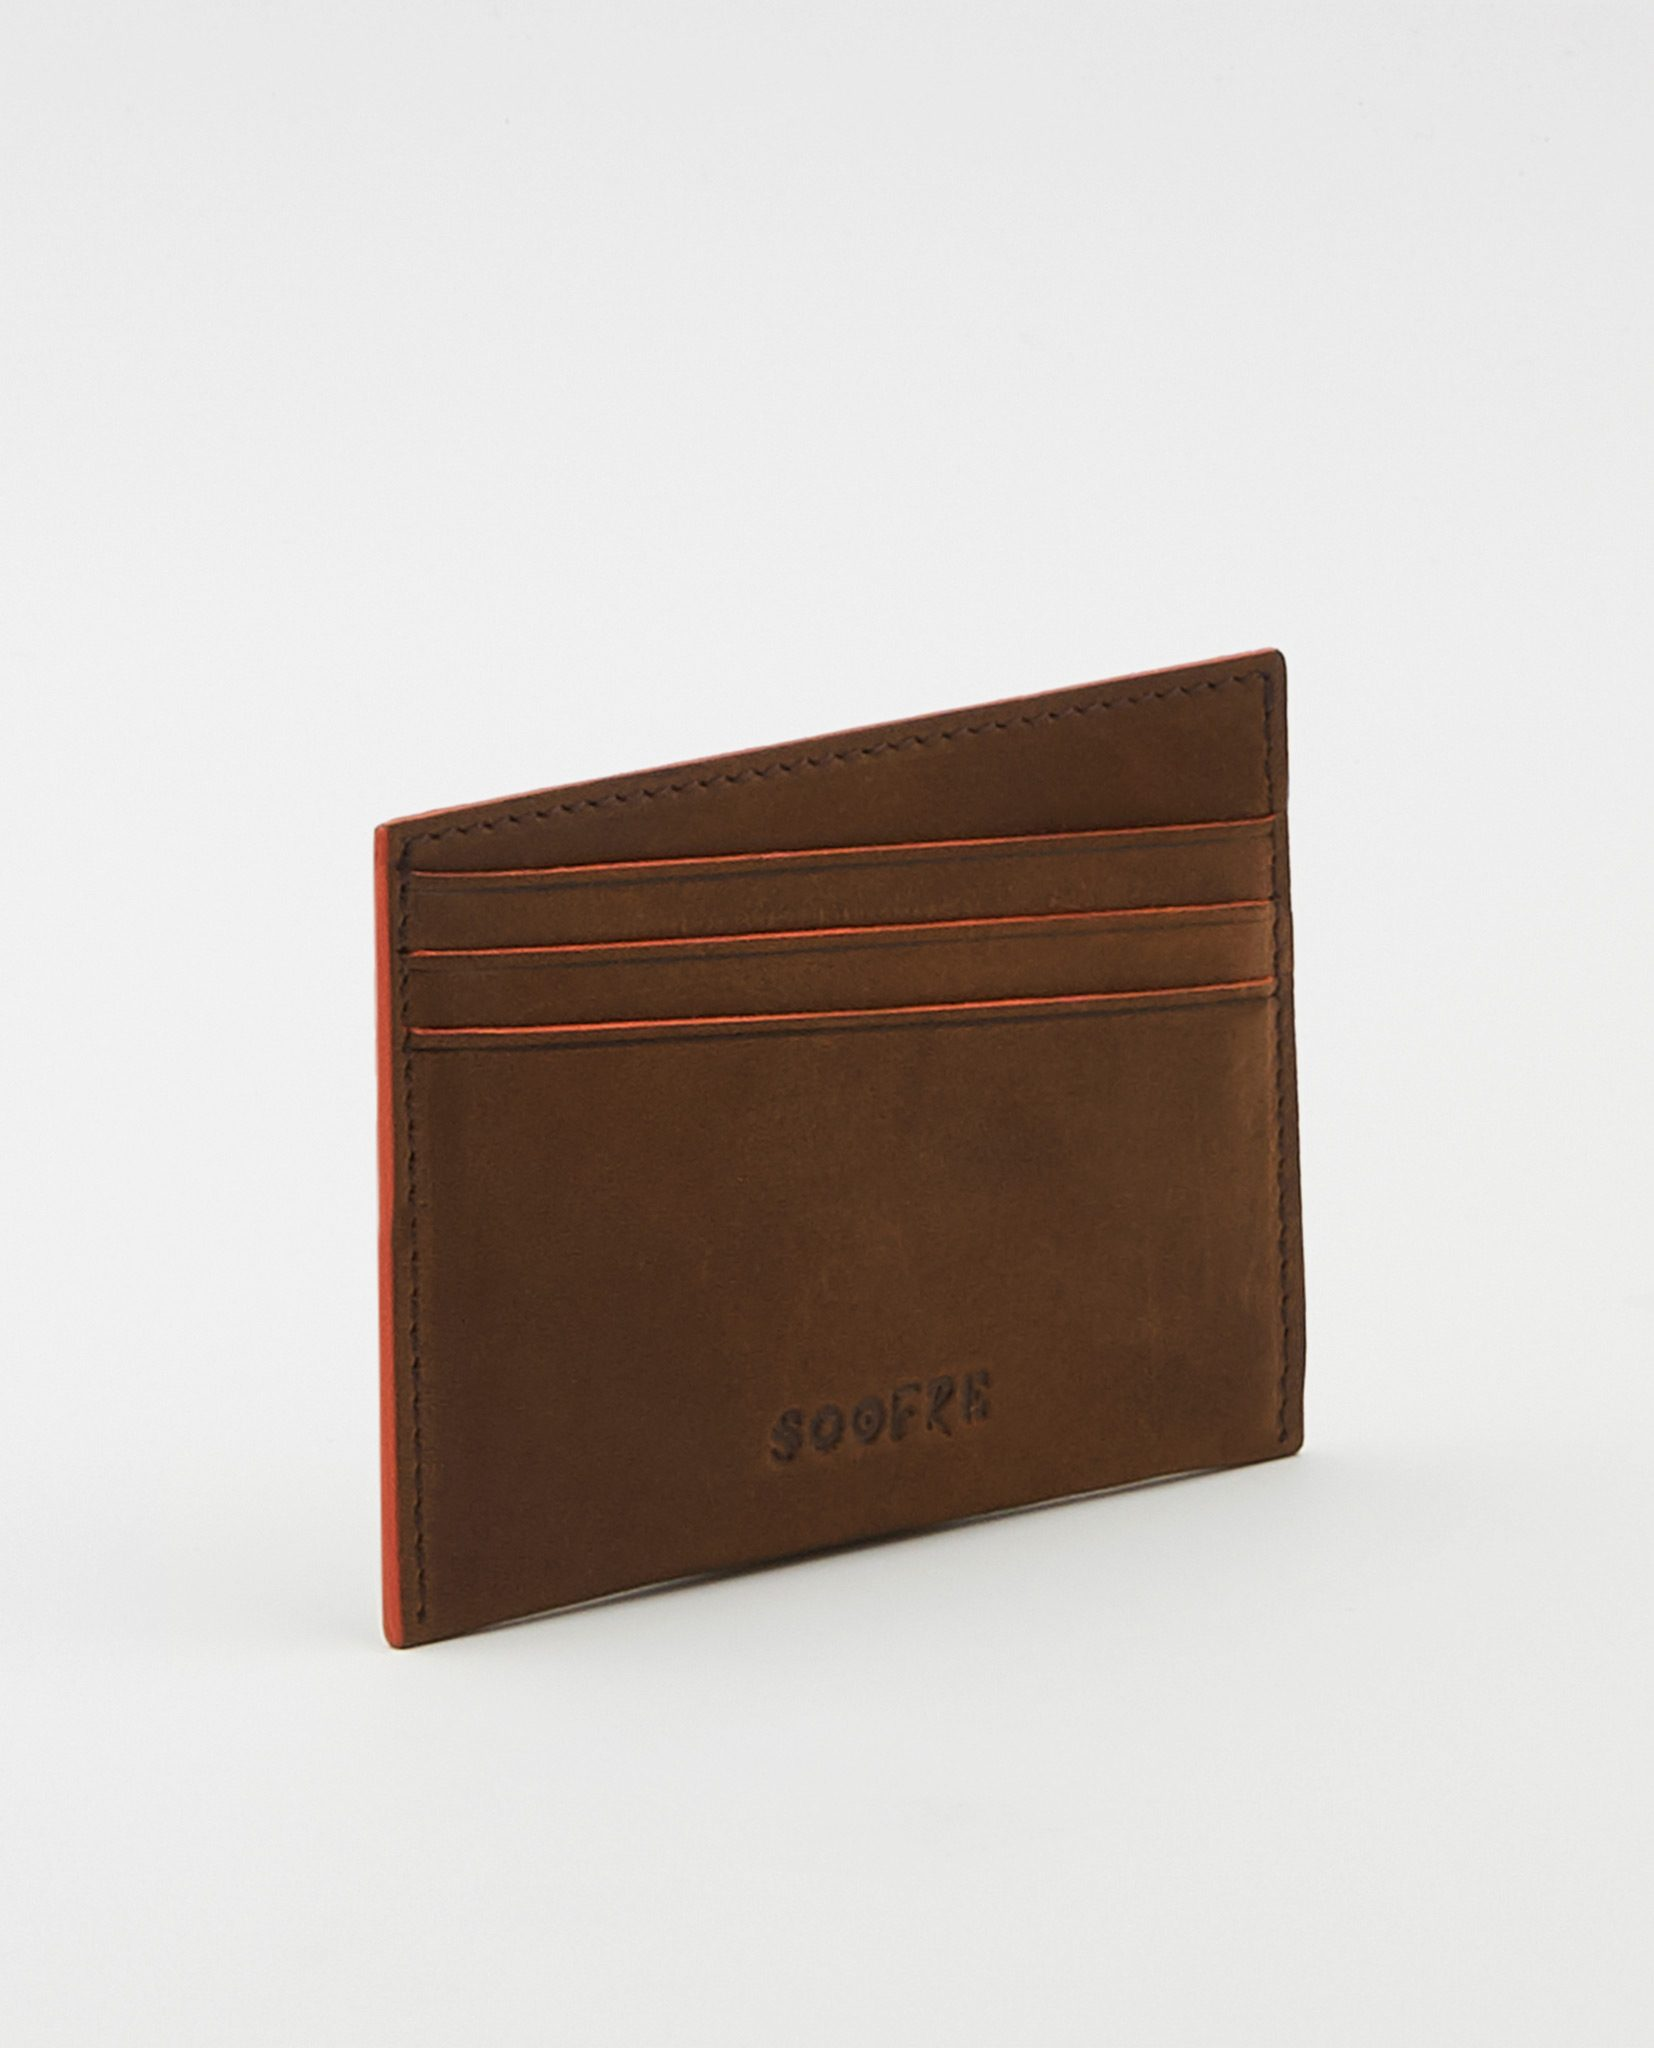 Soofre Vegetable Tanned Leather Card Holder Brown-Orange